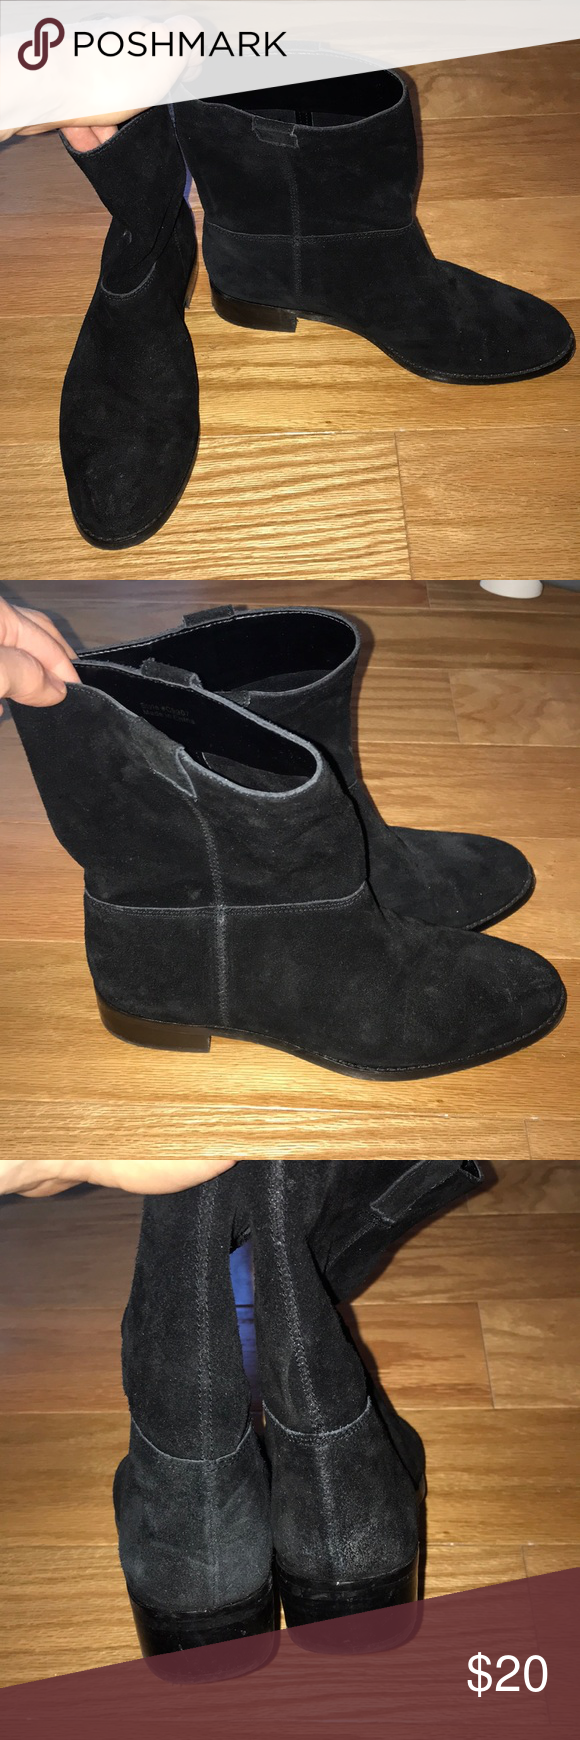 e5bfc8b494d J. Crew black suede ankle boots size 7 Excellent condition genuine black  suede mole boots